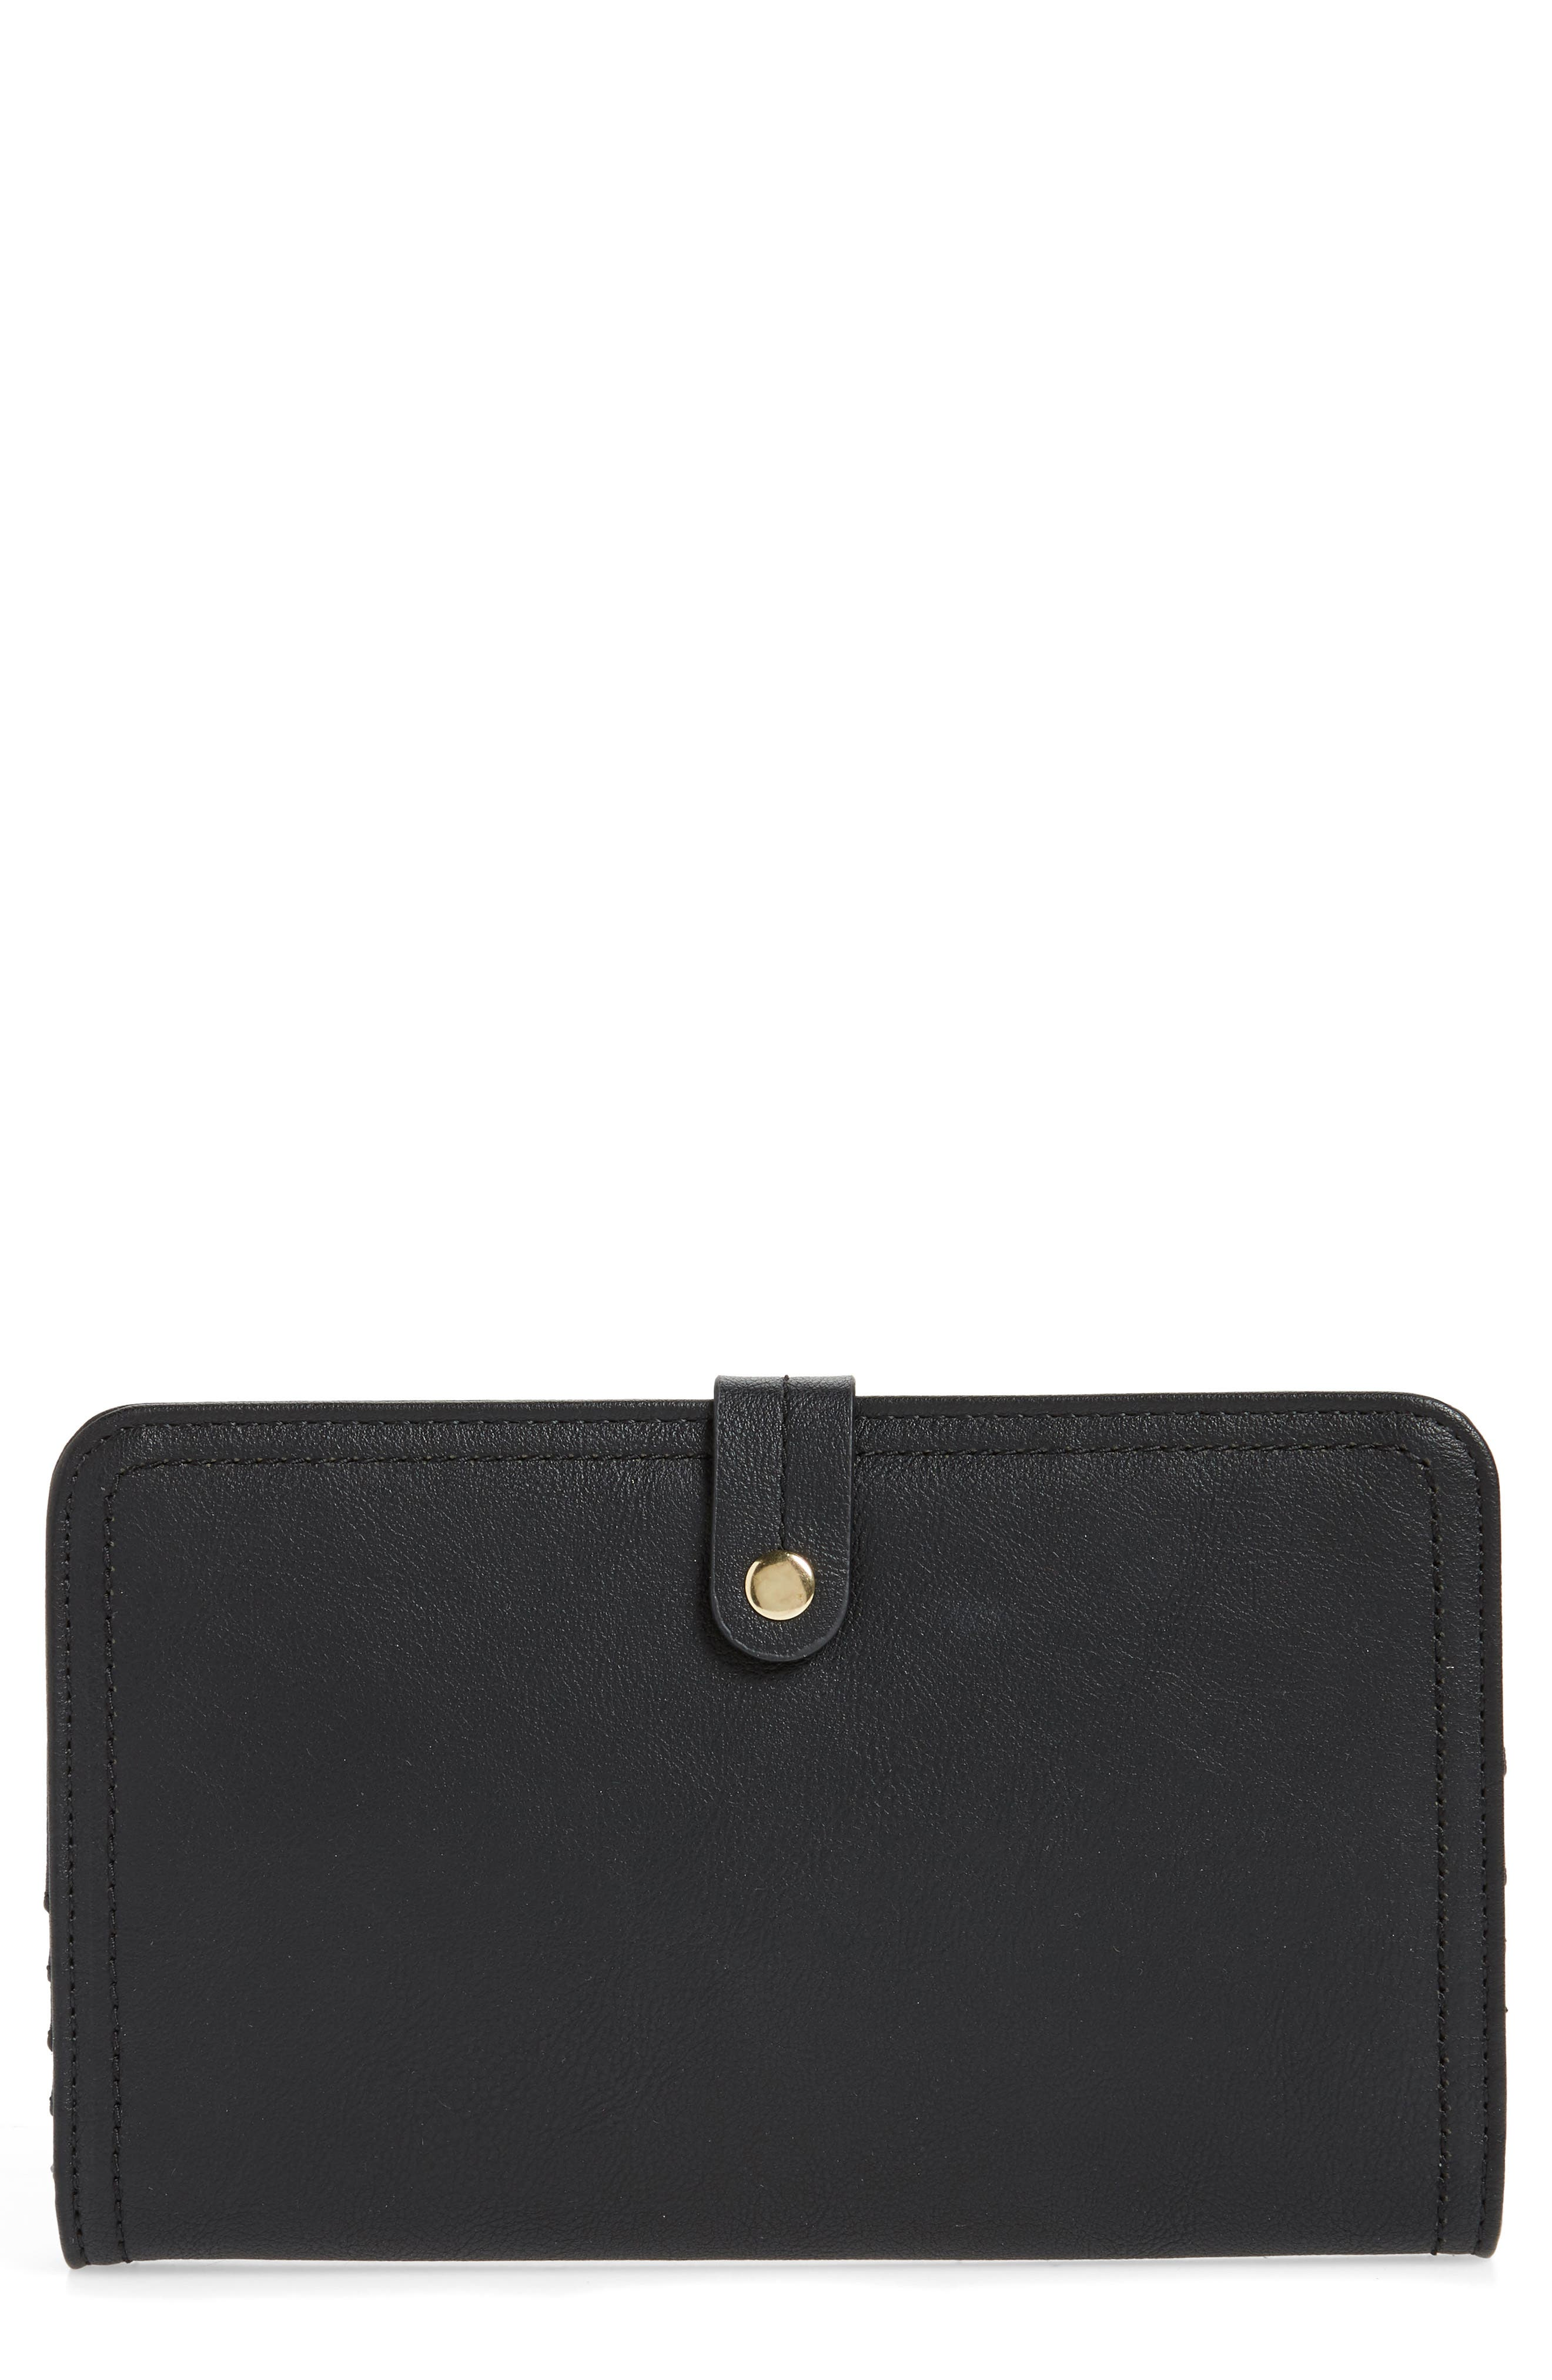 SOLE SOCIETY Travel Faux Leather Wallet, Main, color, BLACK